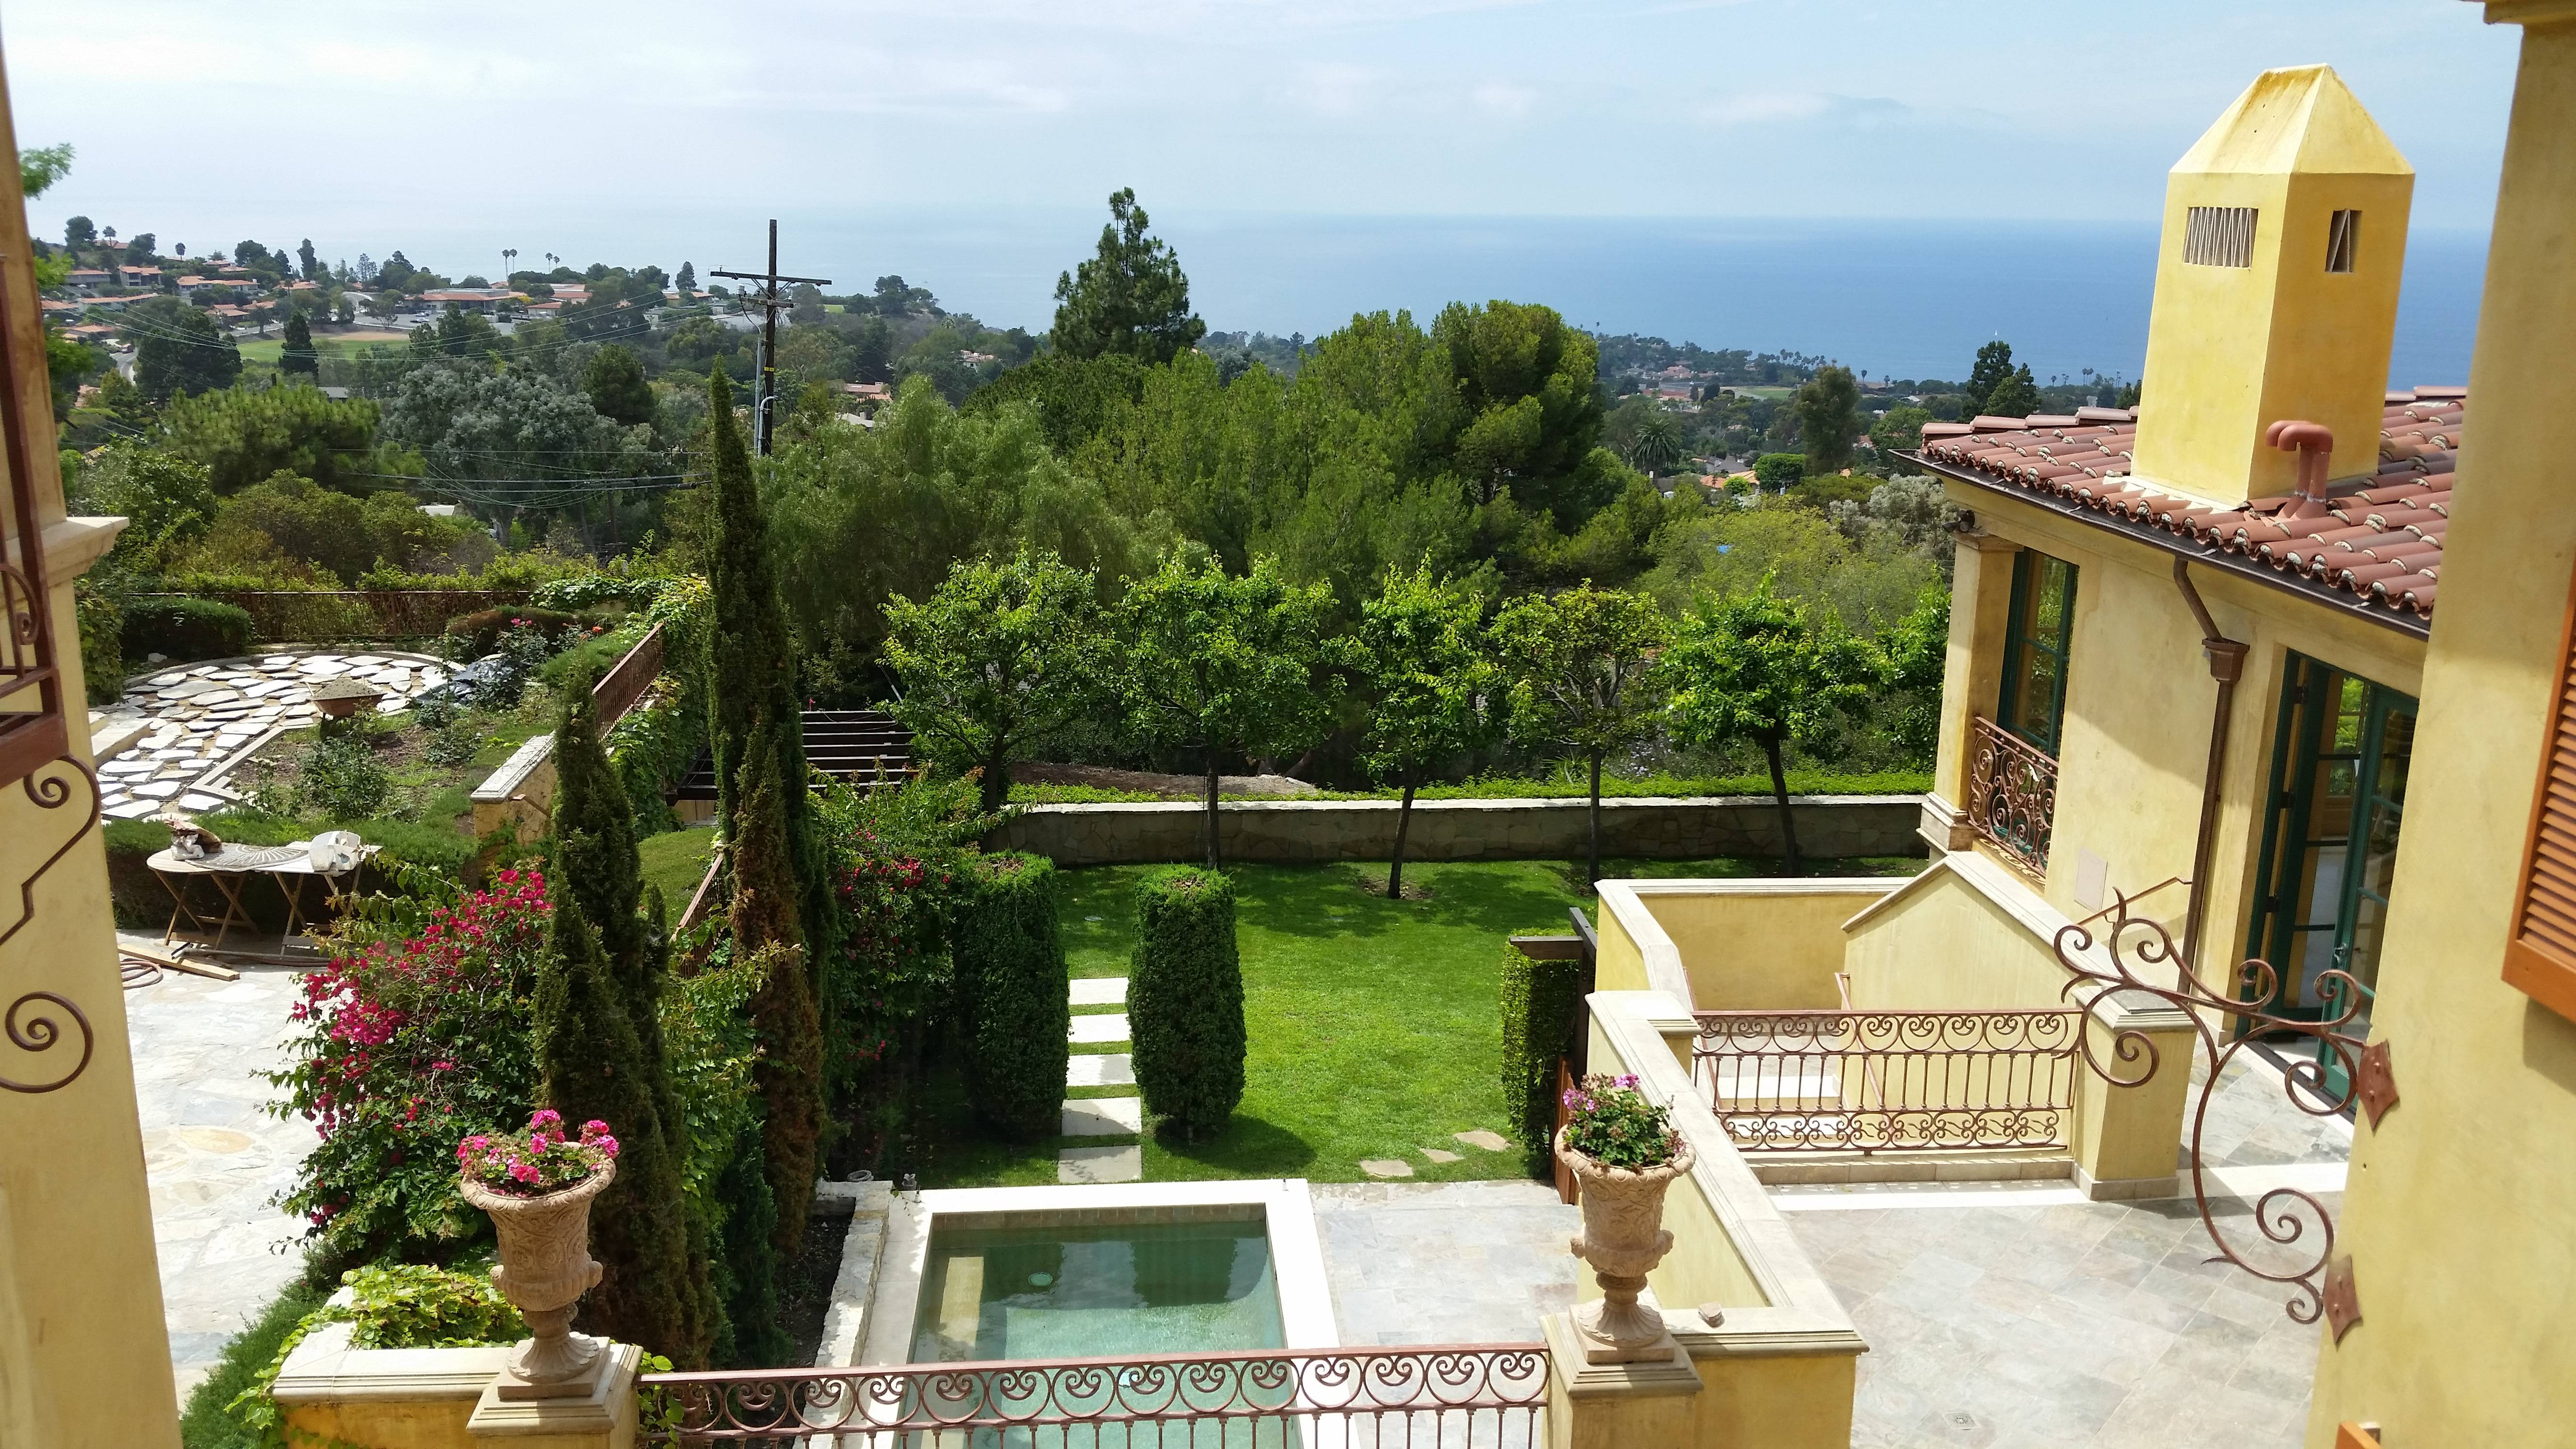 buddhist singles in palos verdes peninsula For sale - 27563 rainbow ridge rd, palos verdes peninsula, ca - $1,495,000 view details, map and photos of this single family property with 3 bedrooms and 2 total baths mls# sb18204845.